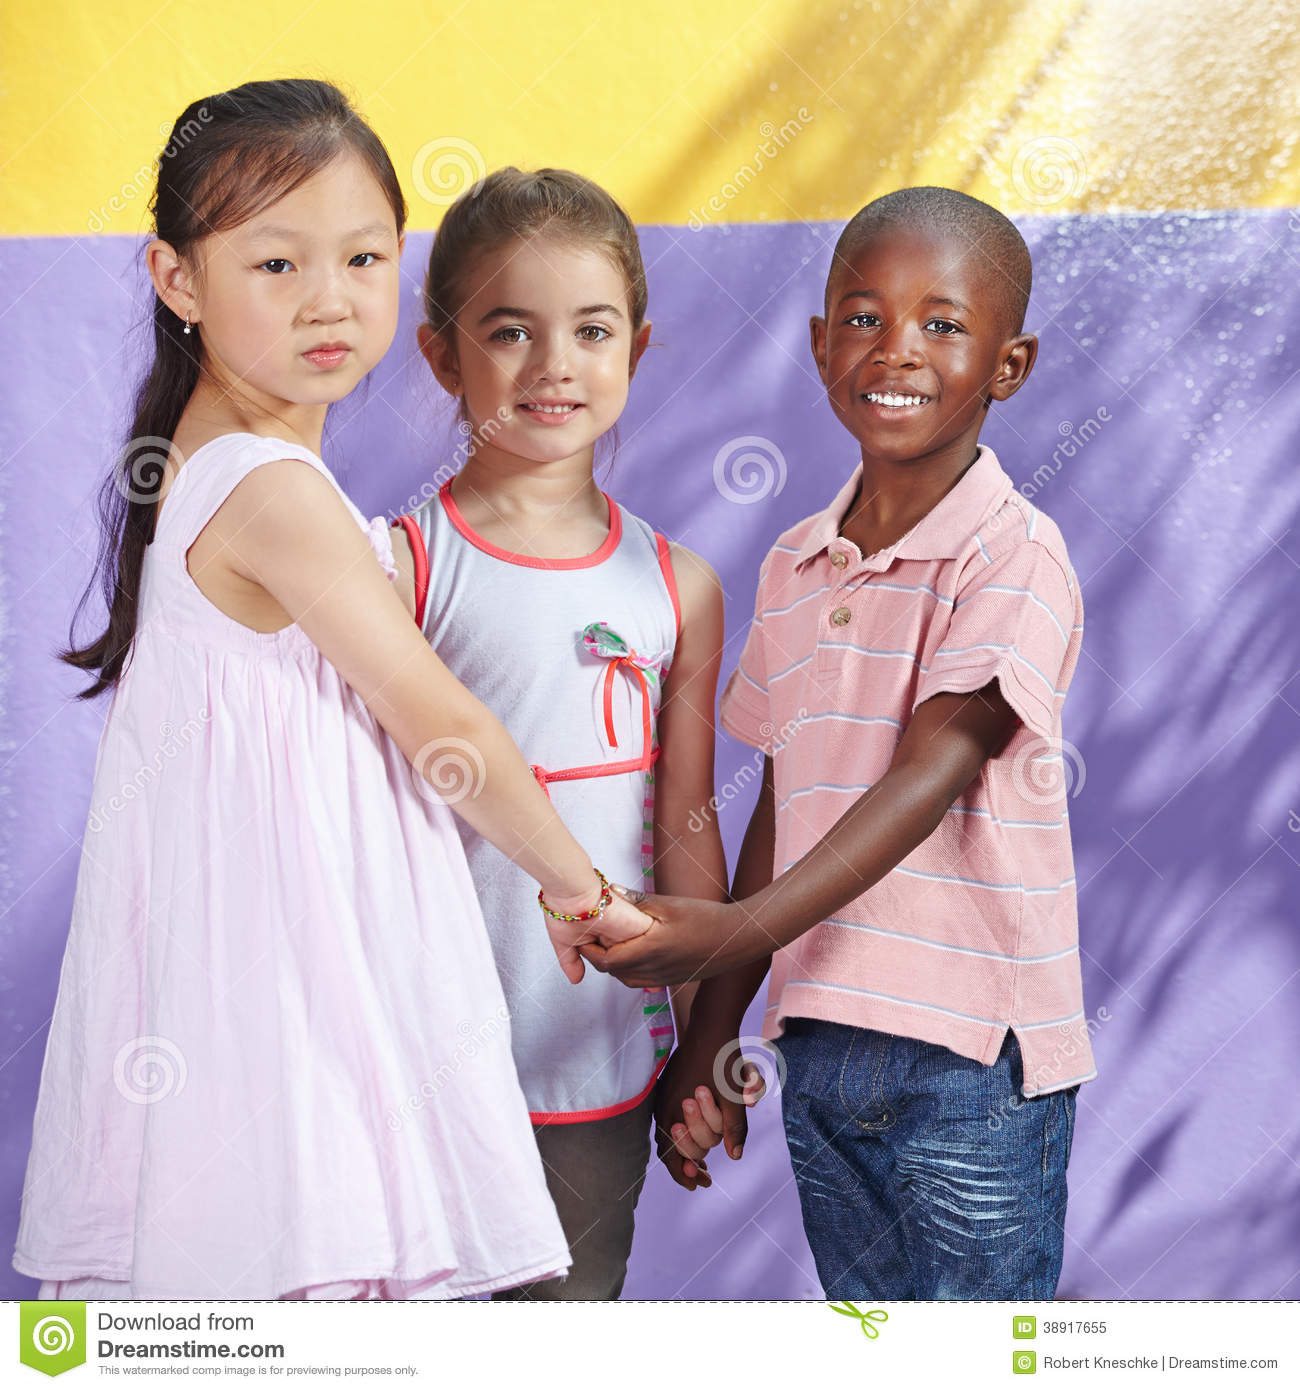 Interracial group of happy children